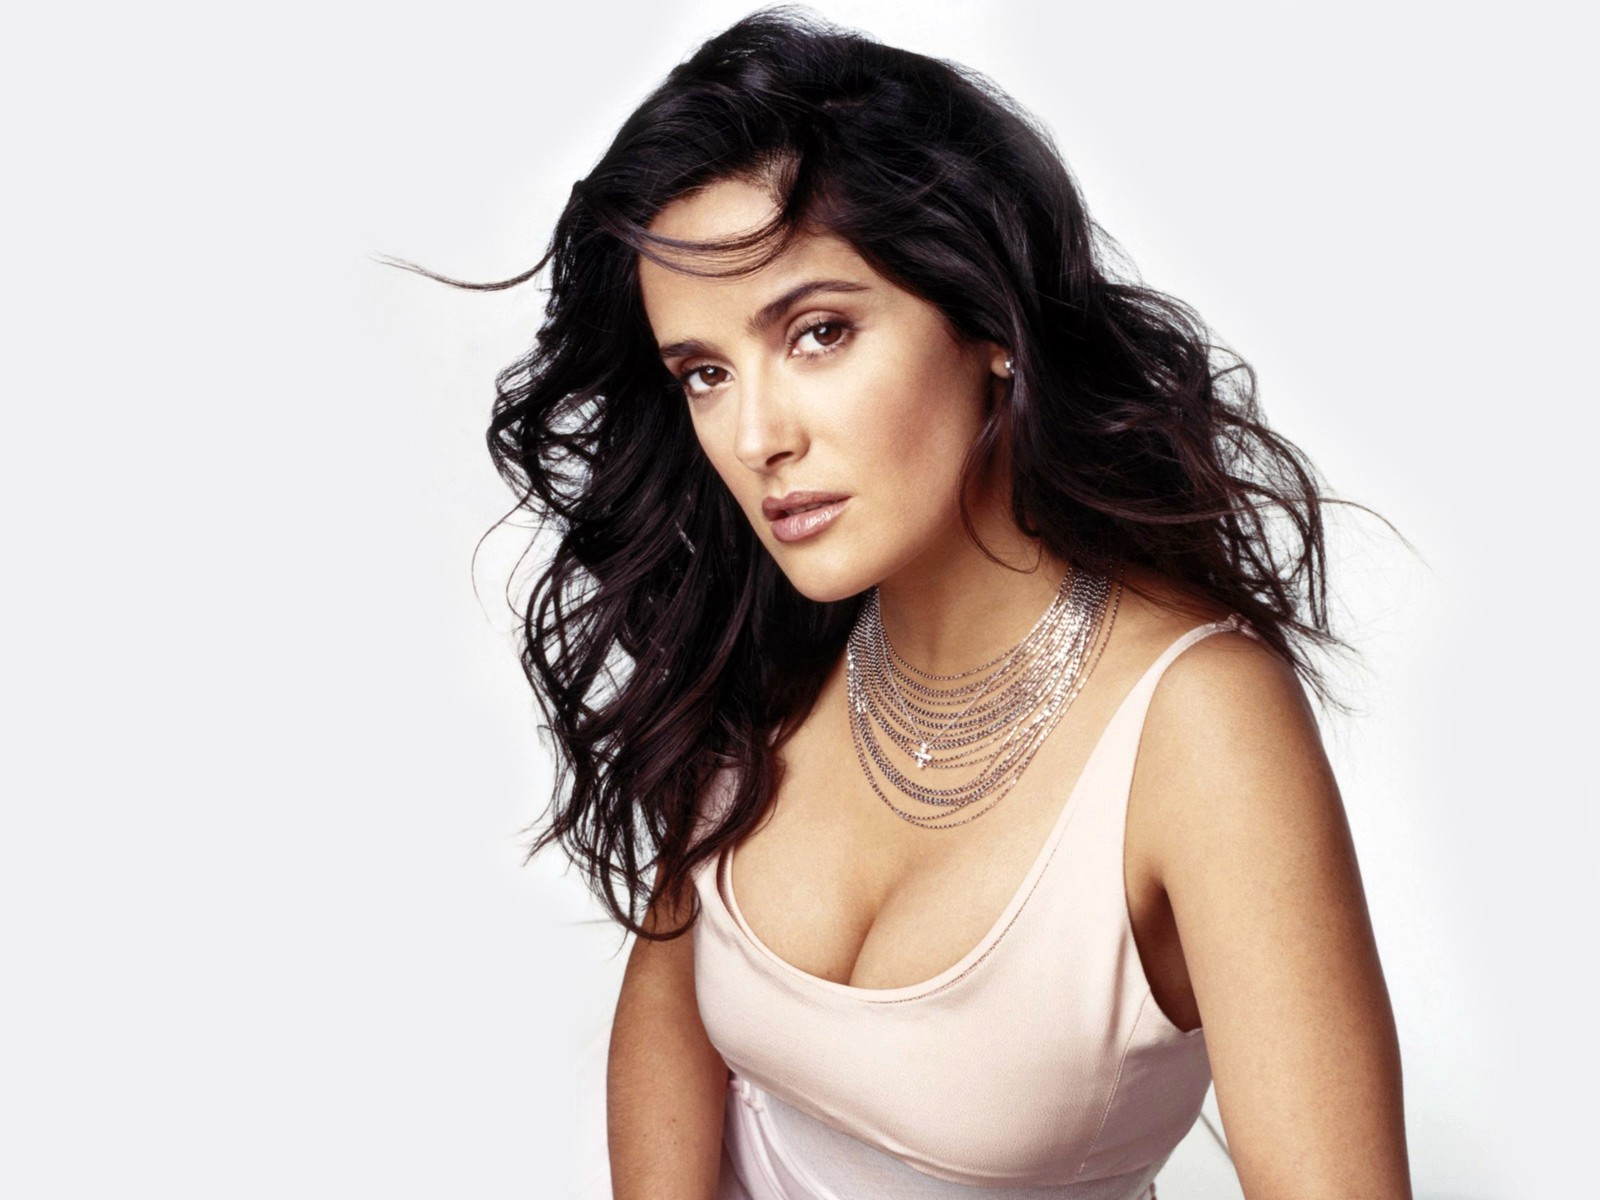 Salma Hayek New 2010